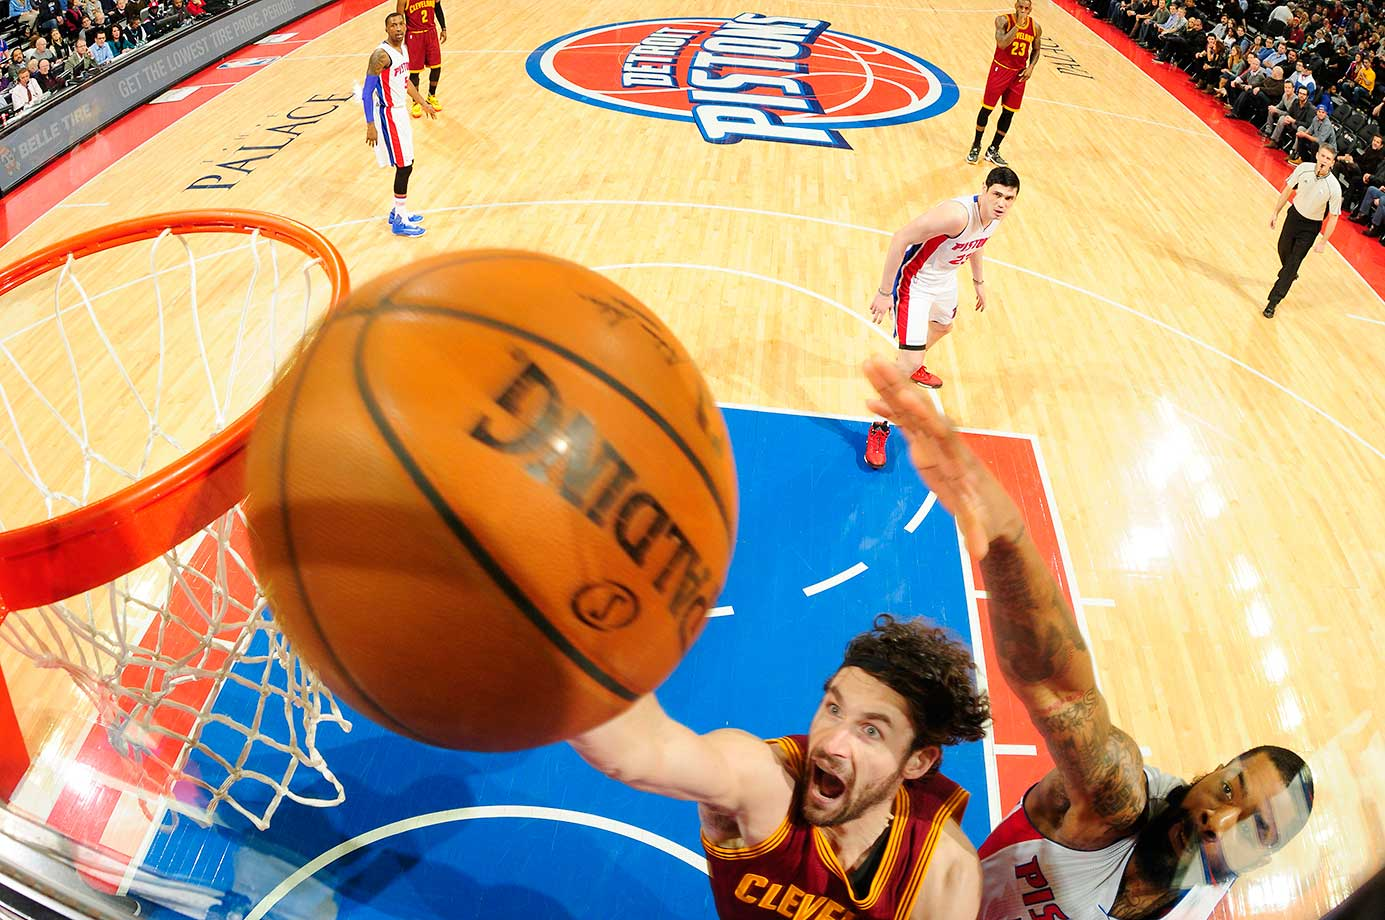 Kevin Love of the Cleveland Cavaliers goes for the layup against the Detroit Pistons at The Palace of Auburn Hills in Auburn Hills, Mich.